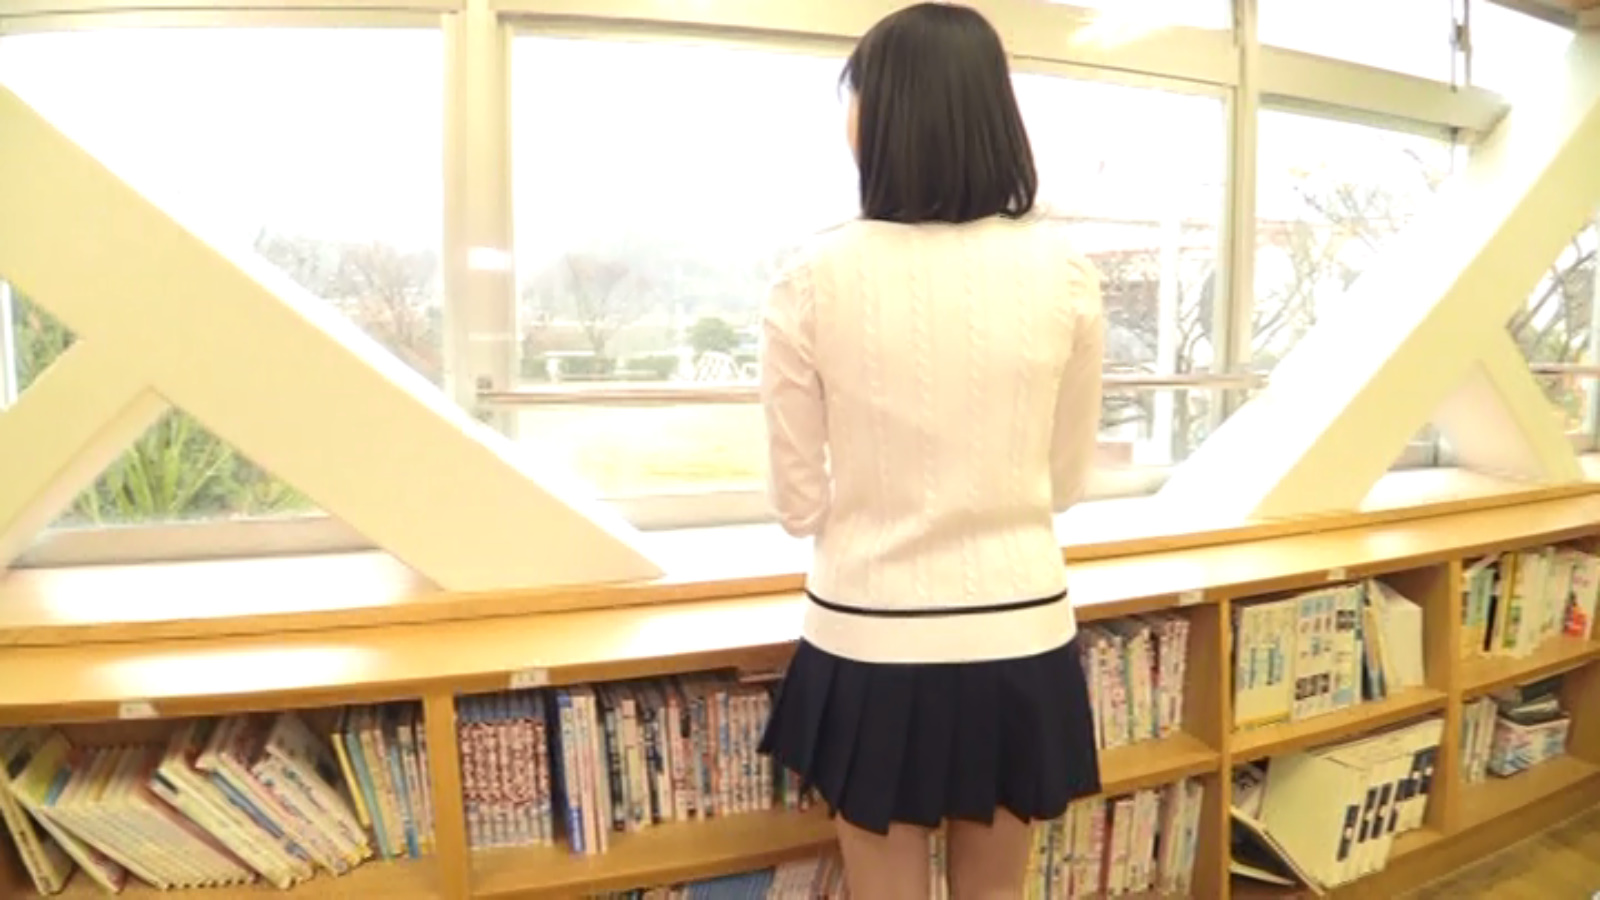 Every secret in the library125